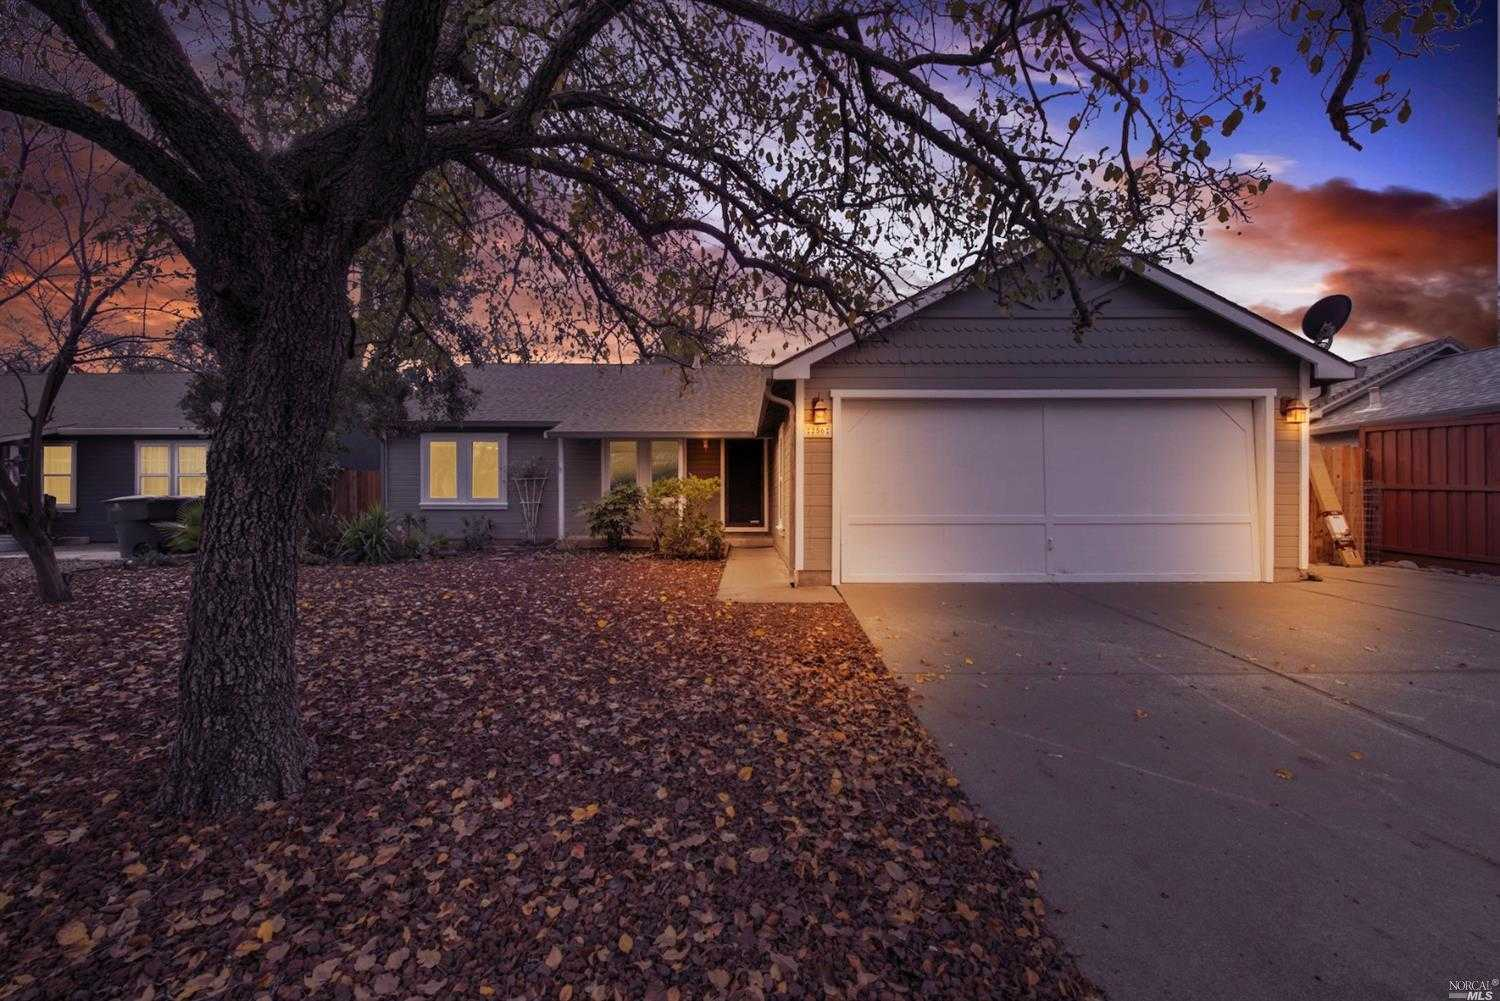 $475,000 - 4Br/2Ba -  for Sale in Vacaville